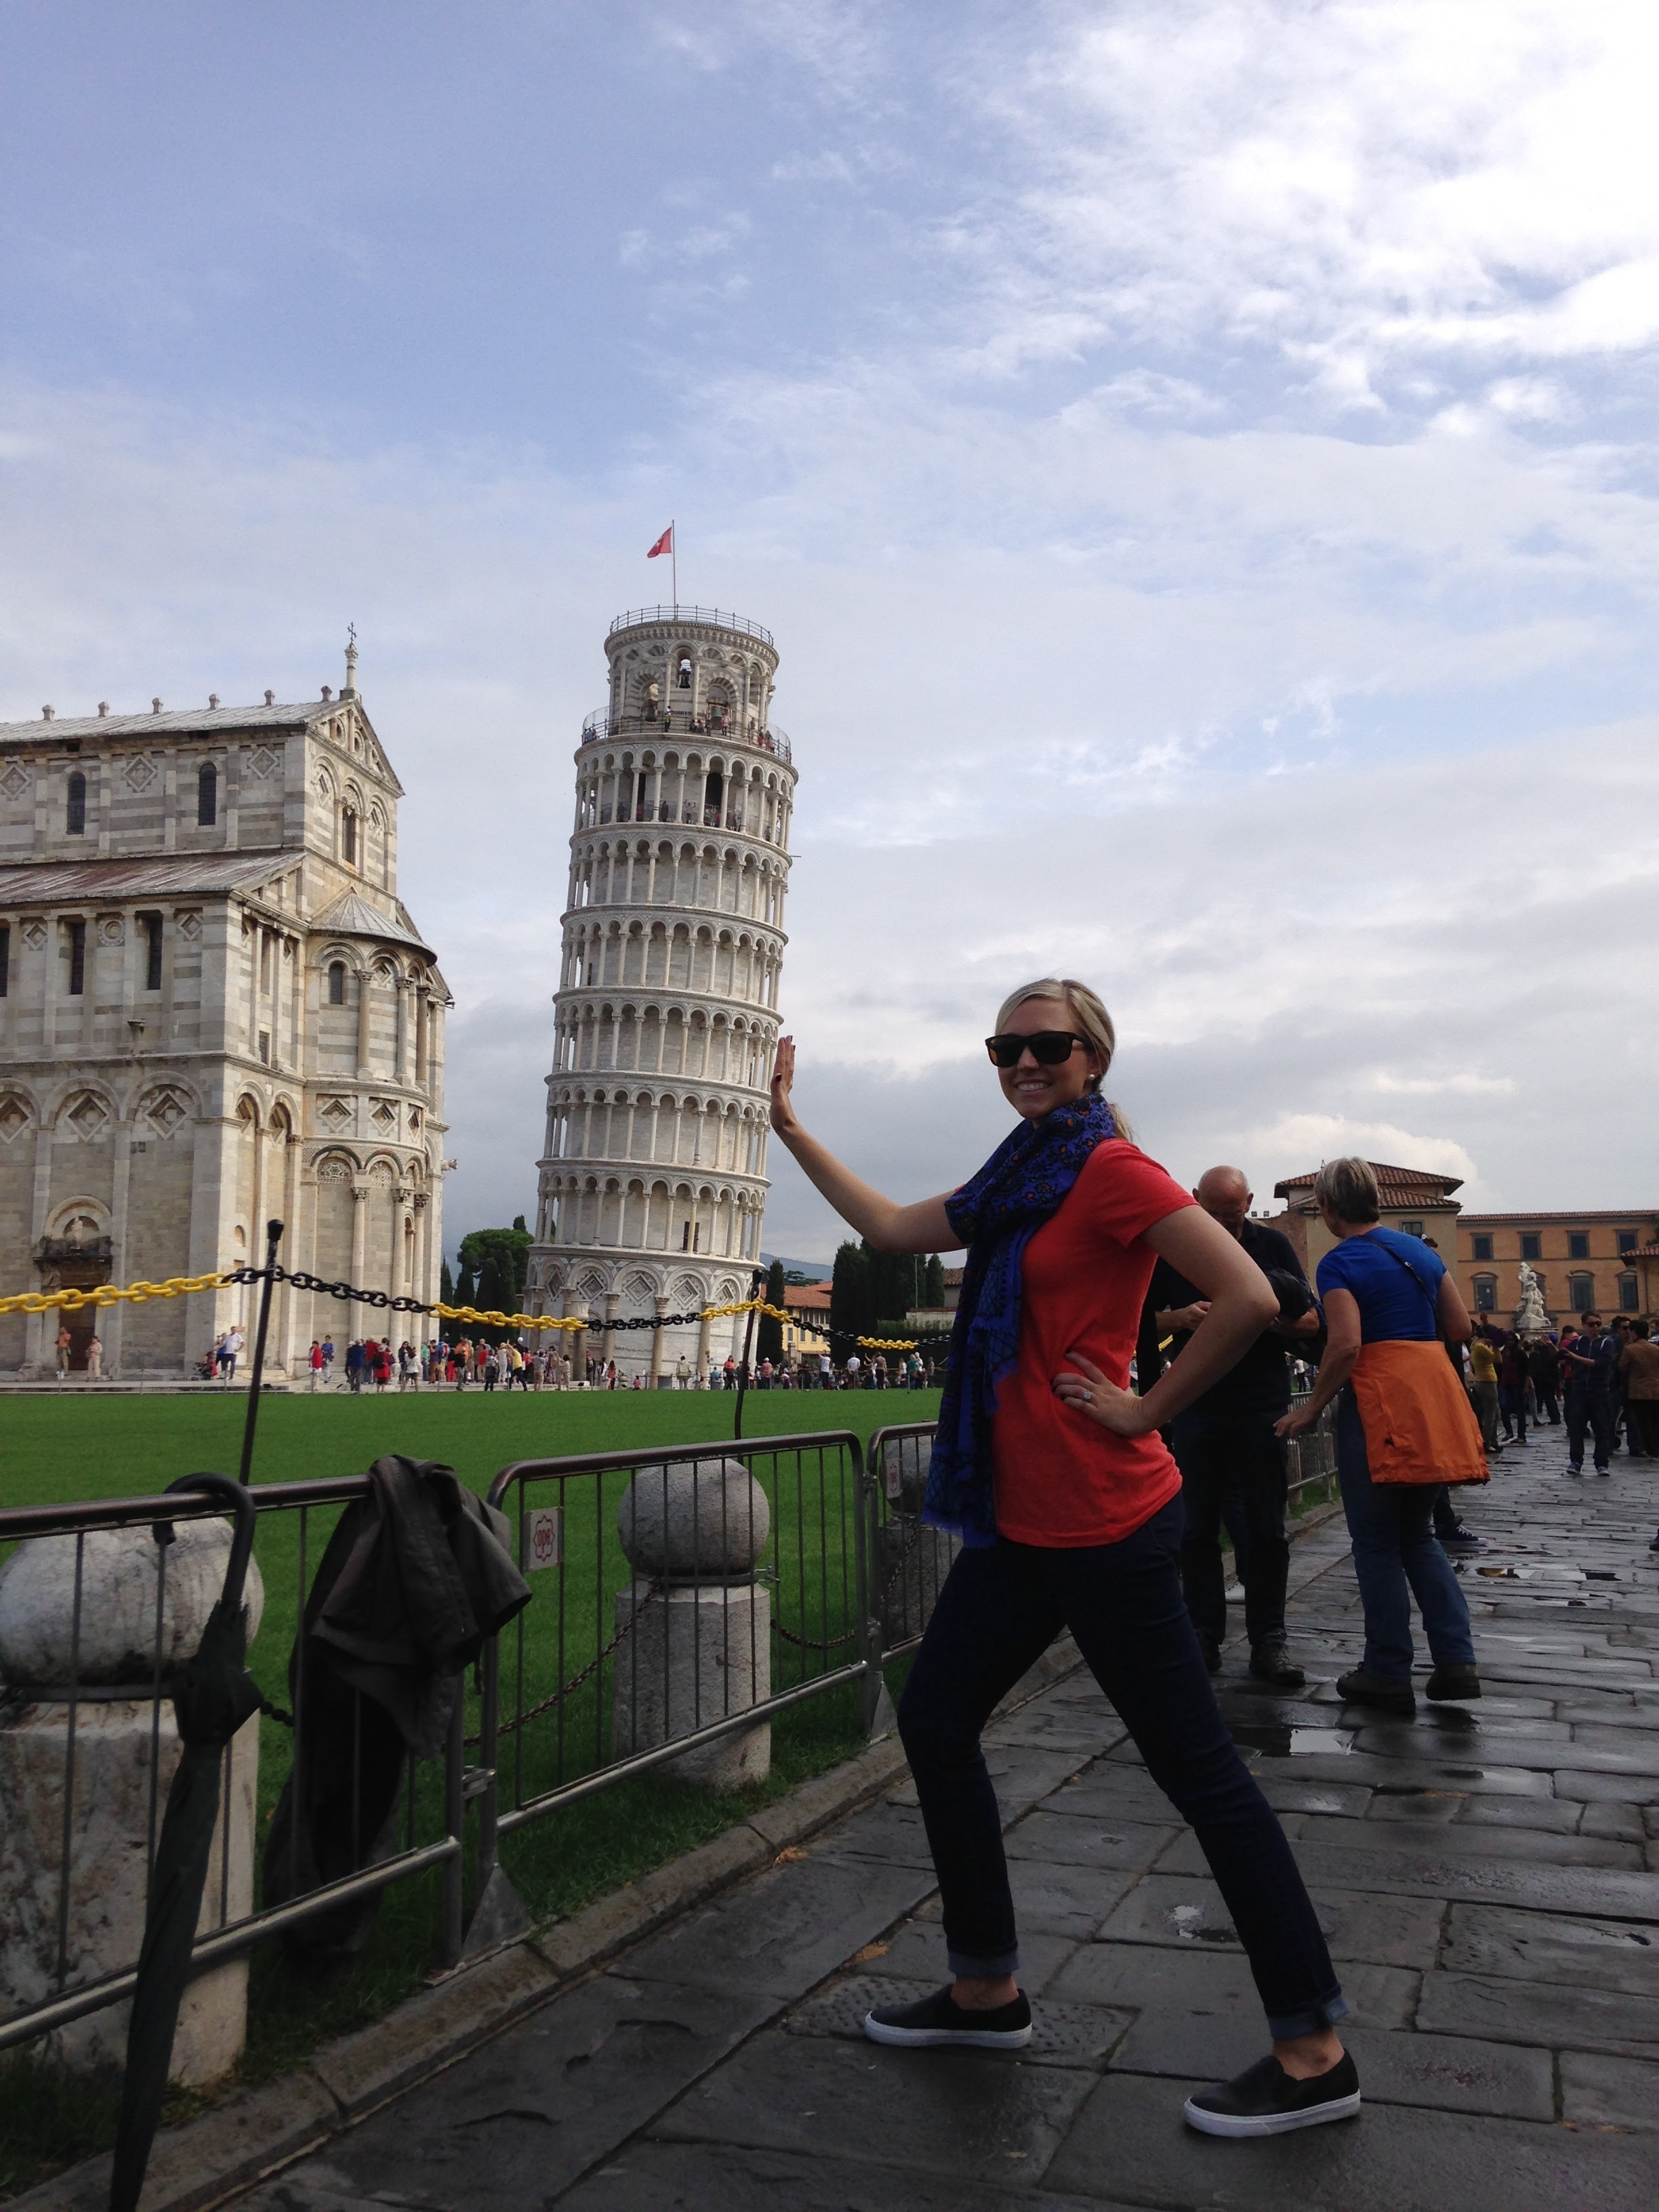 An obligatory picture with the Leaning Tower